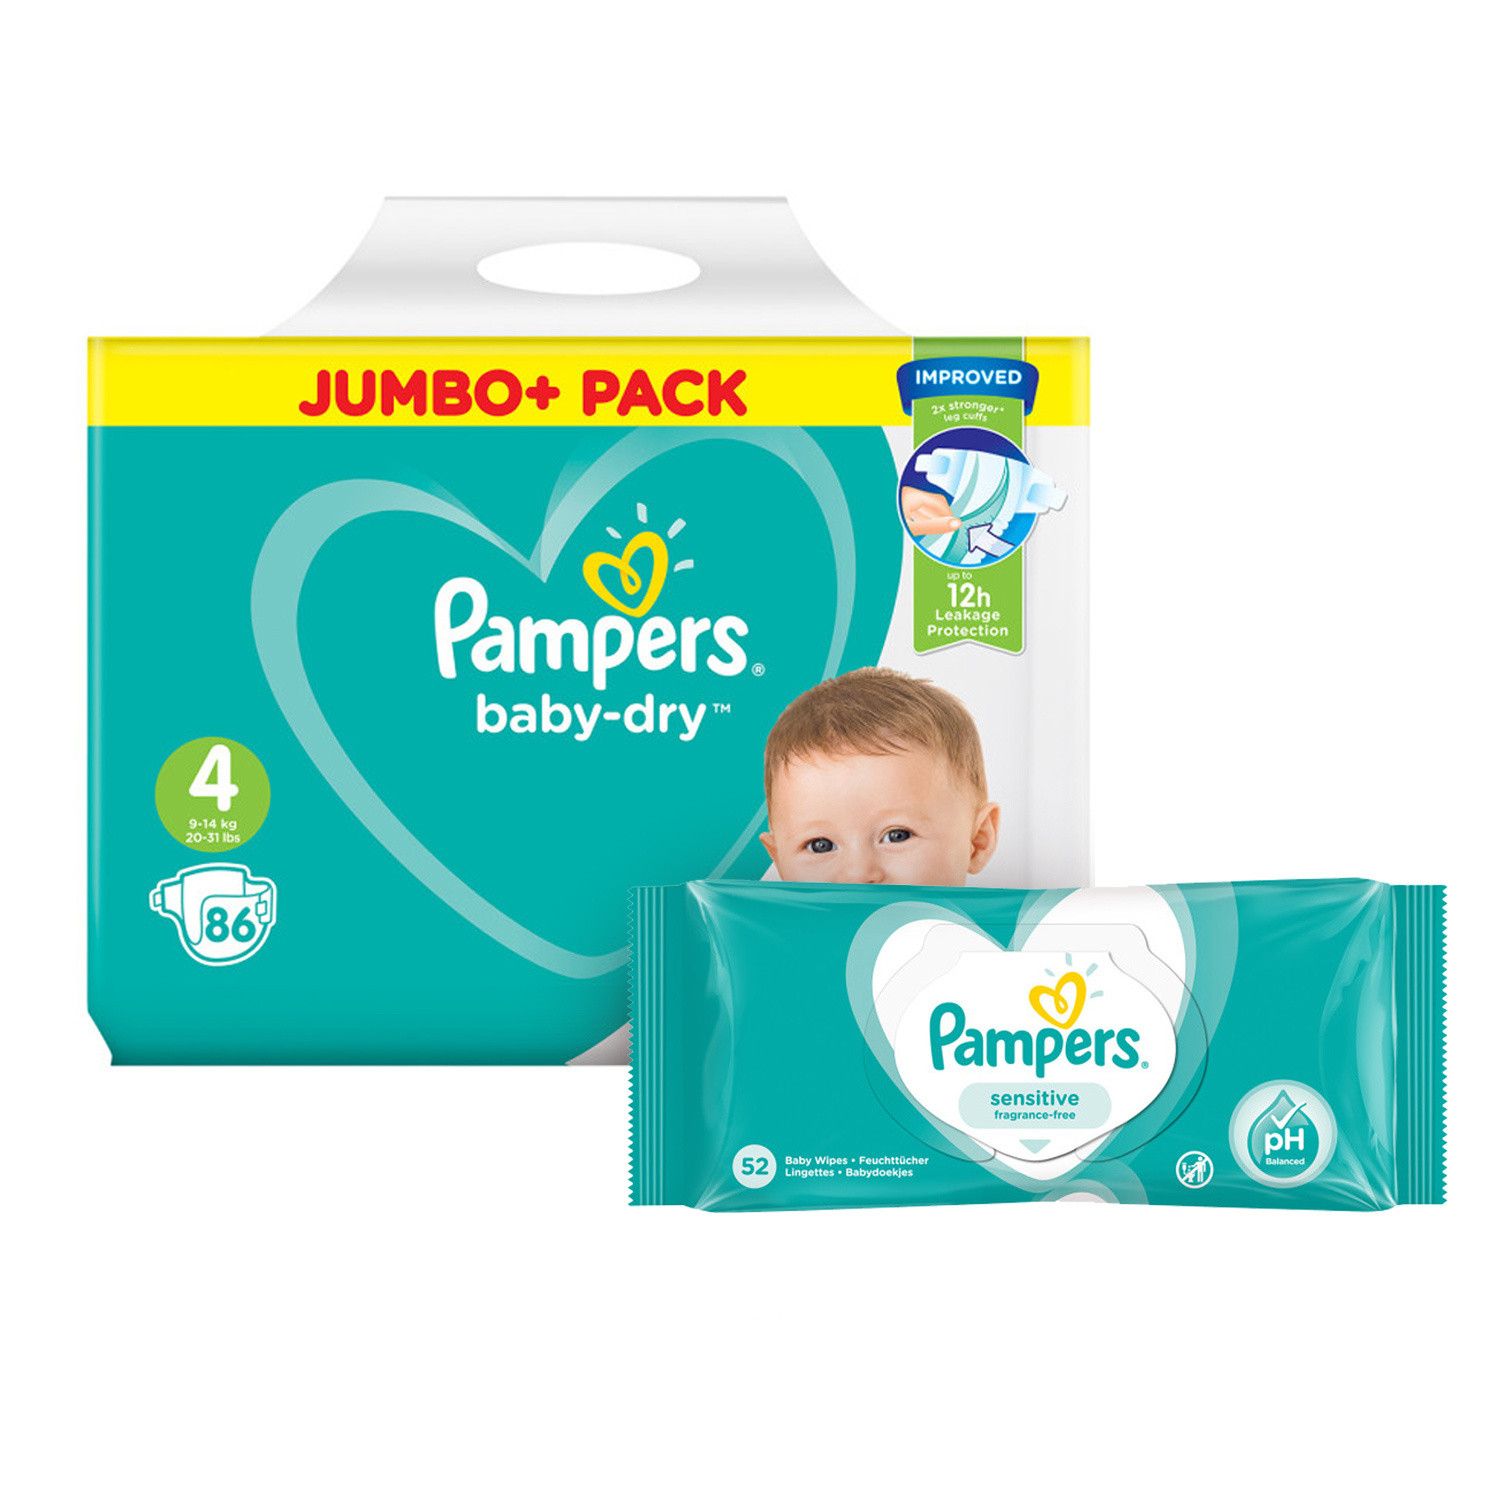 Pampers Baby Dry Size 4 Jumbo Pack & Wipes Bundle